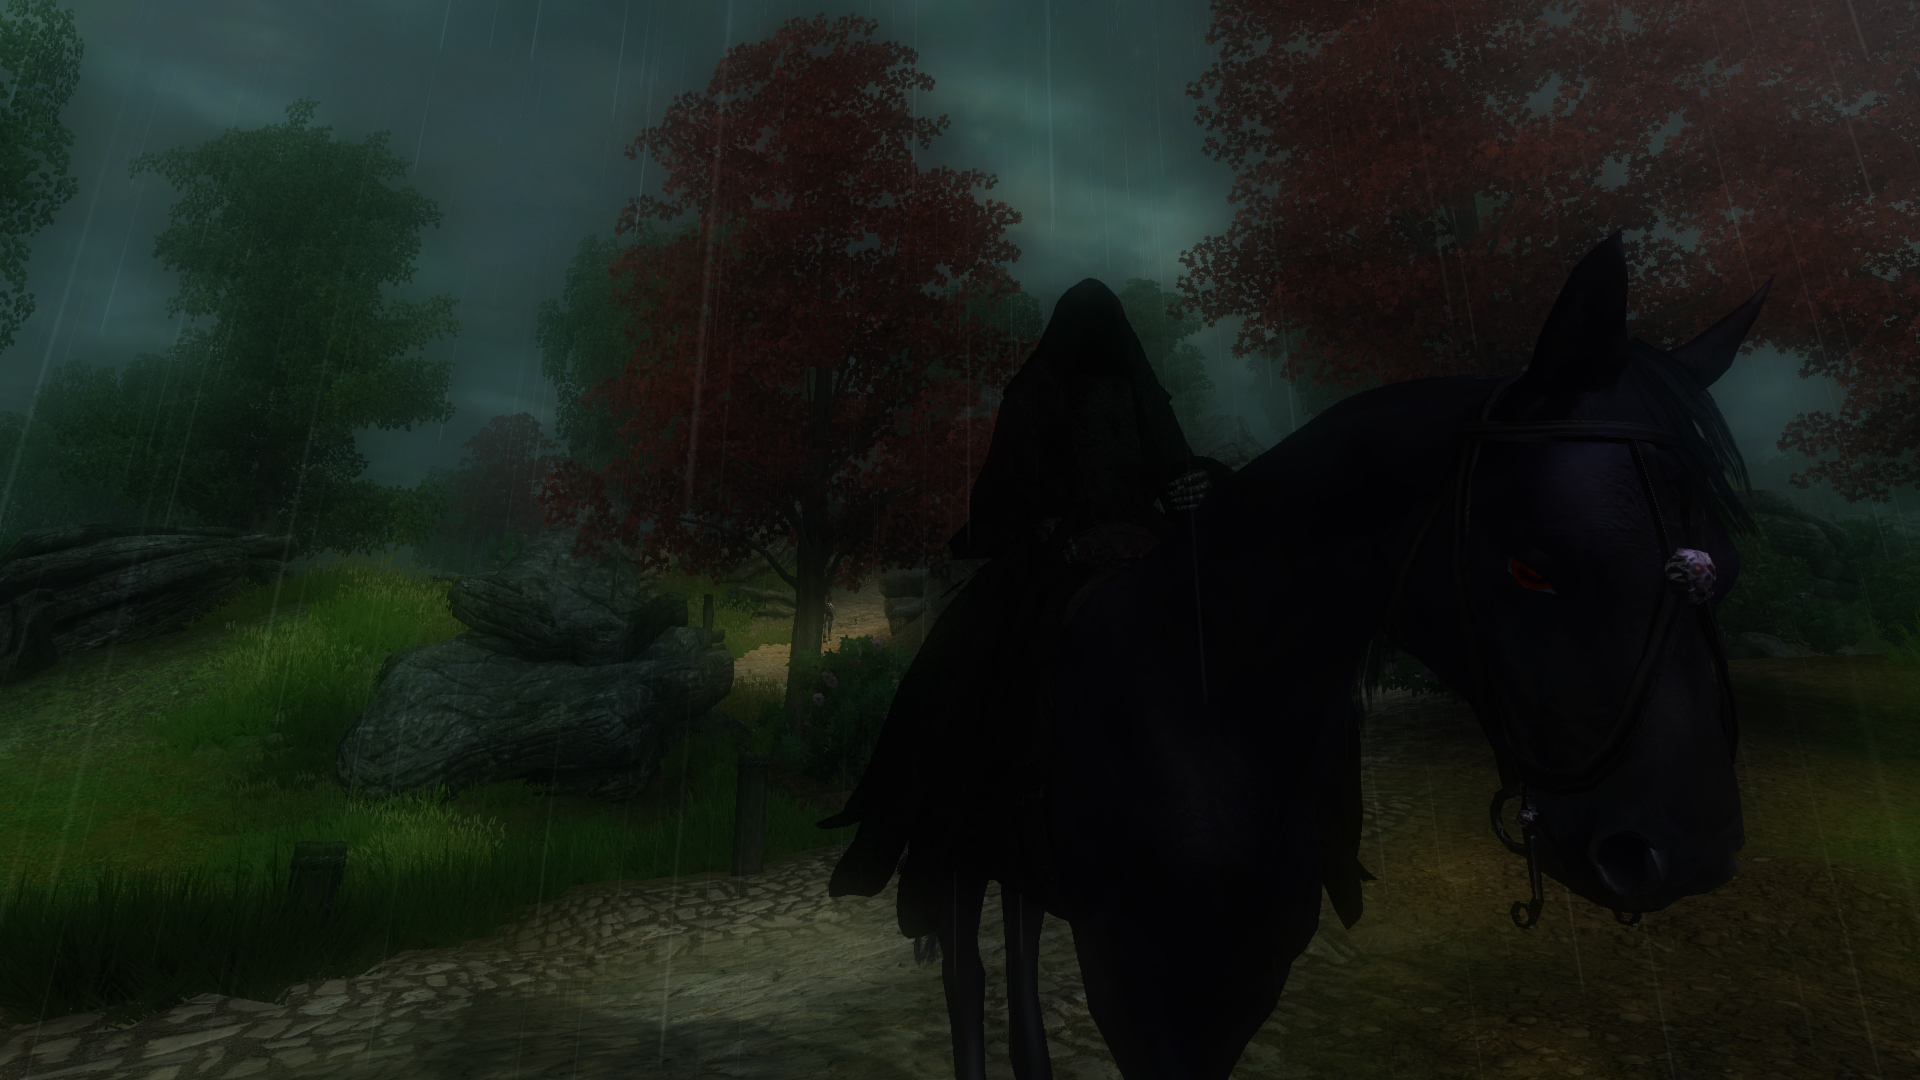 Dark Rider in the Rain